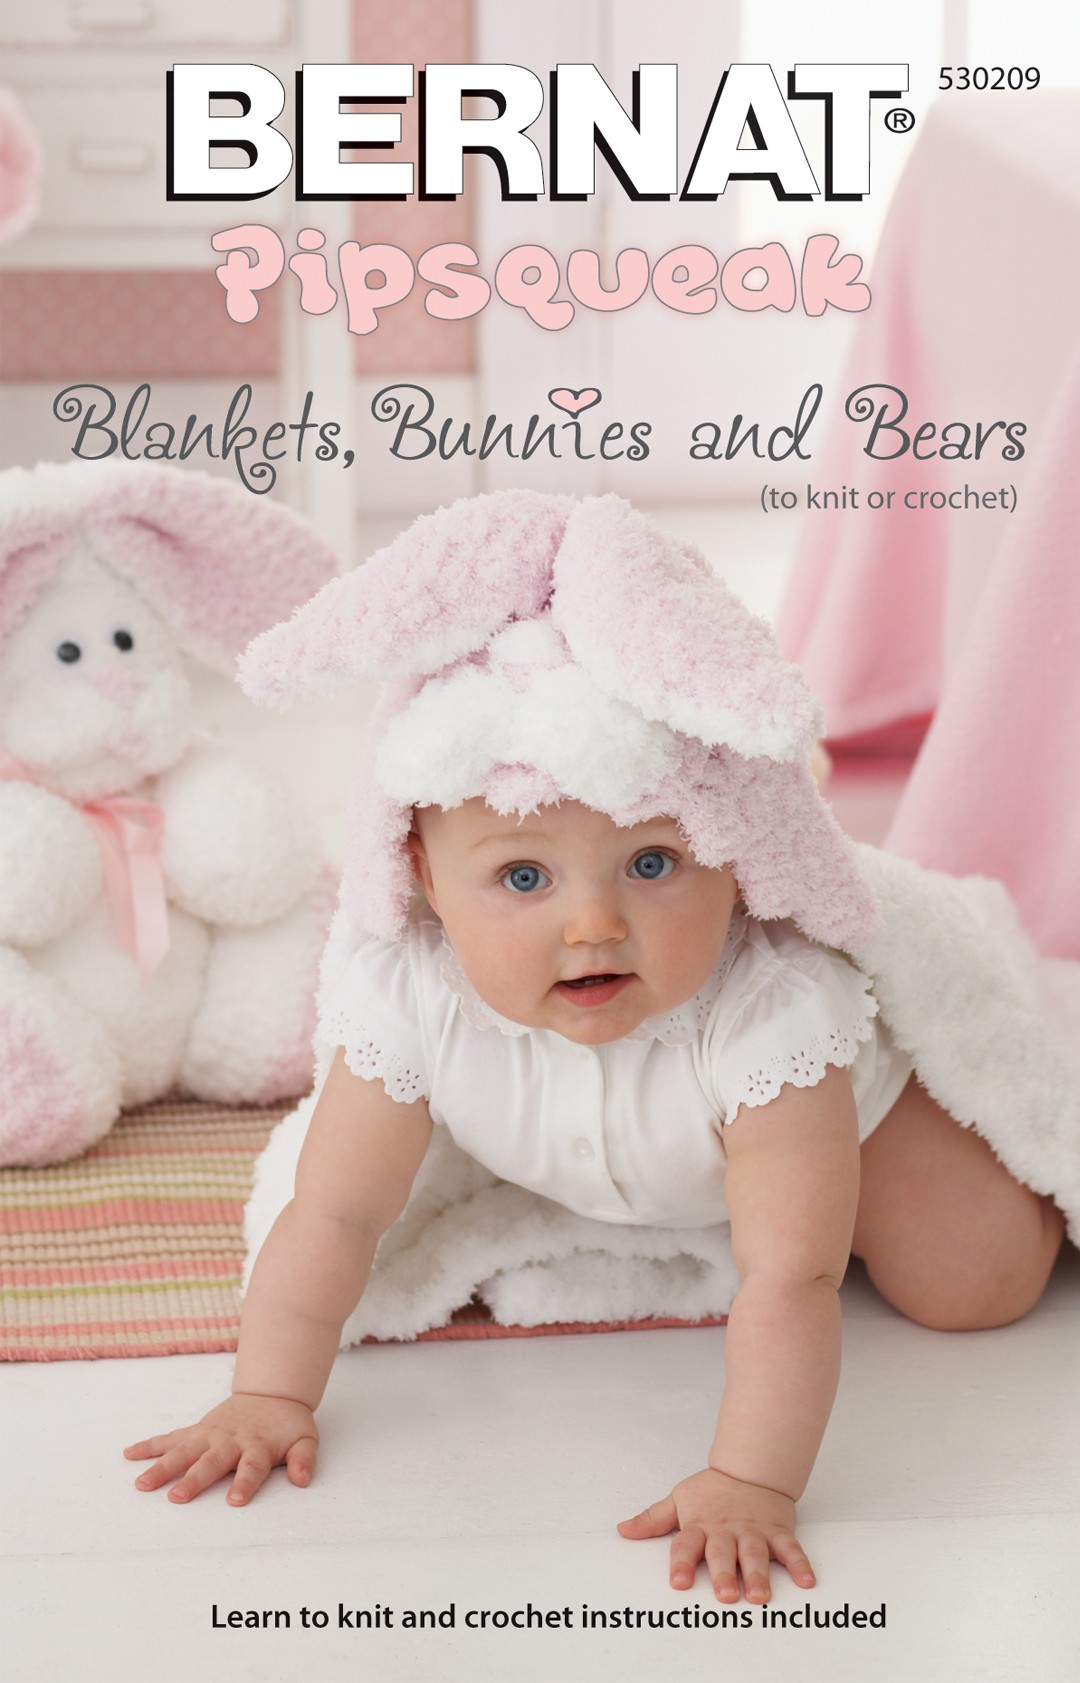 Blankets, Bunnies and Bears